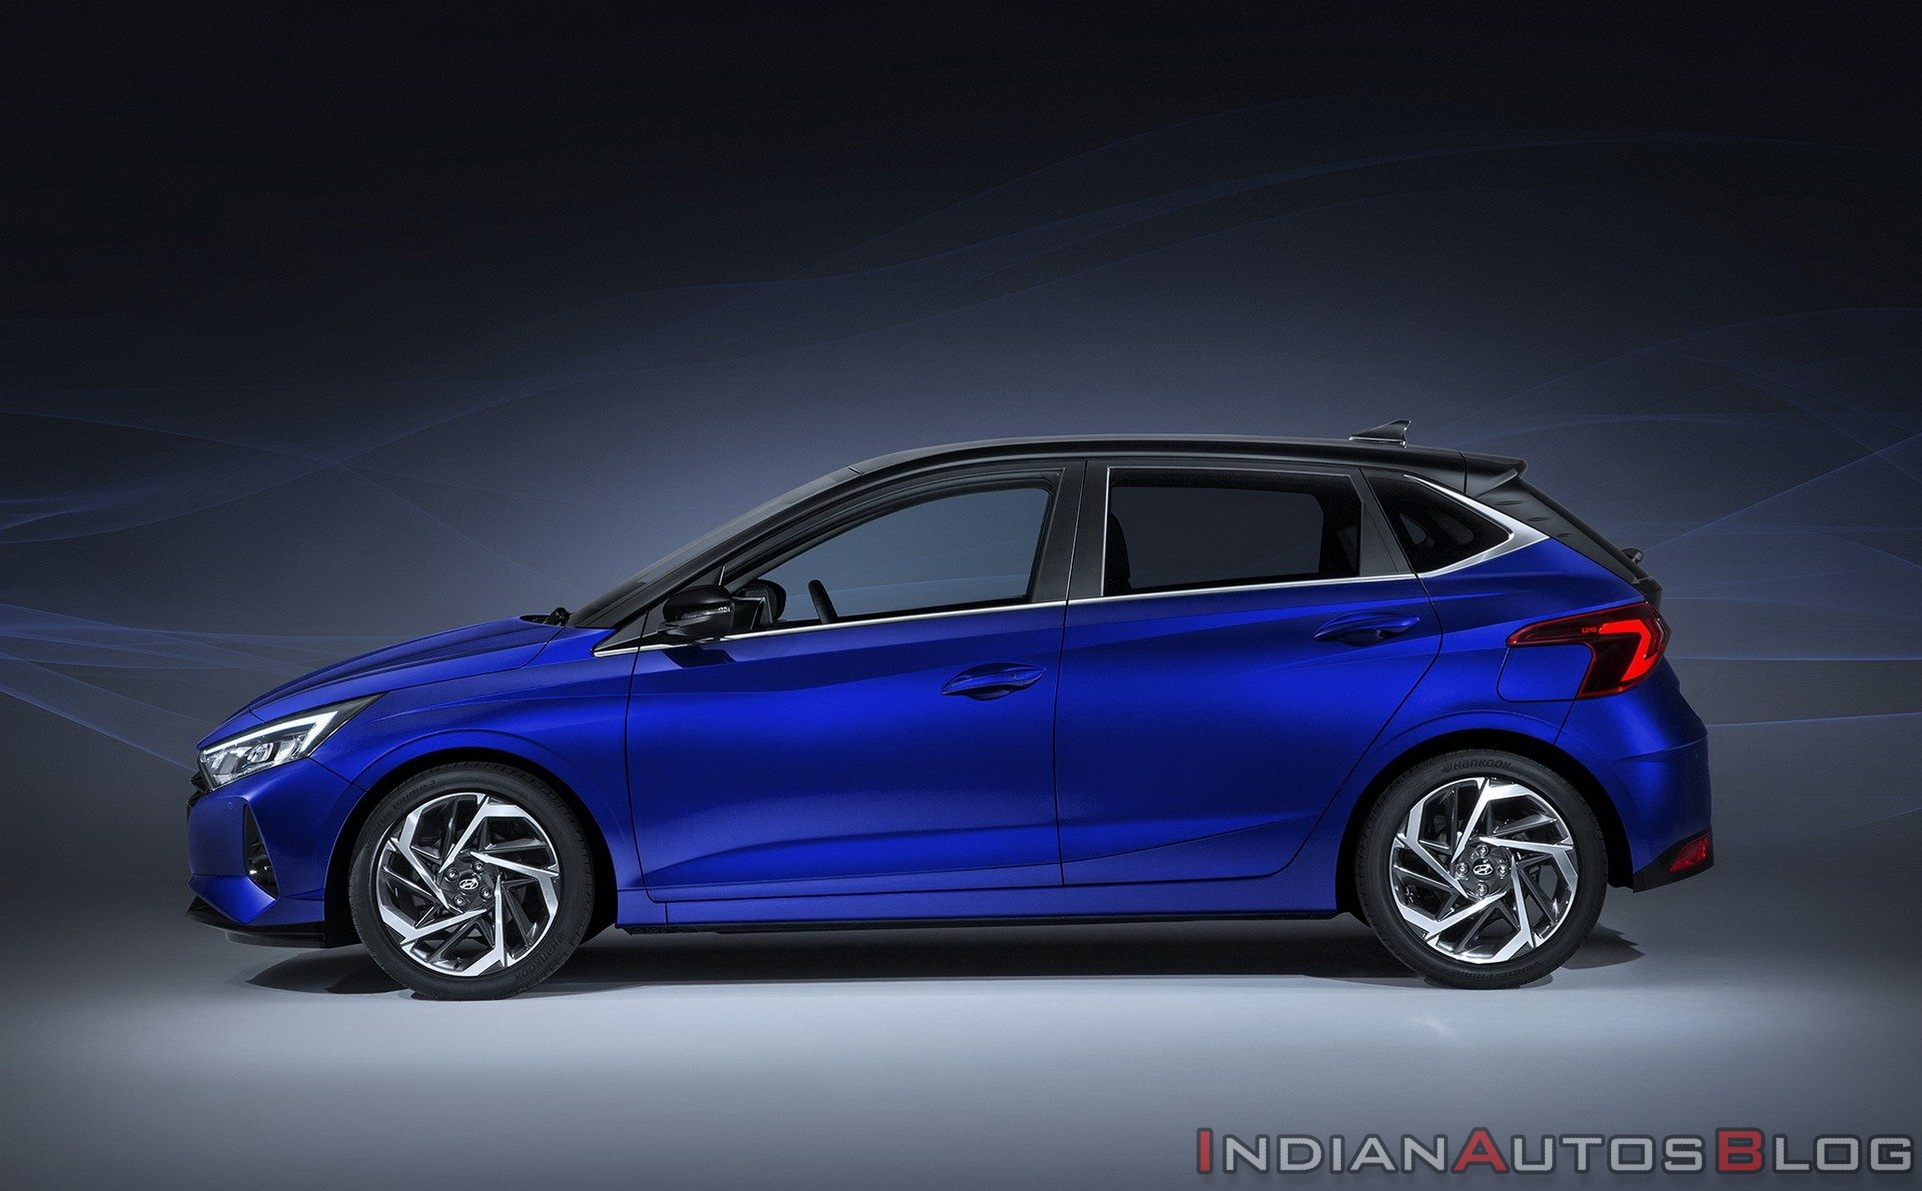 2020 Hyundai I20 To Be Launched In India In September Not June Report